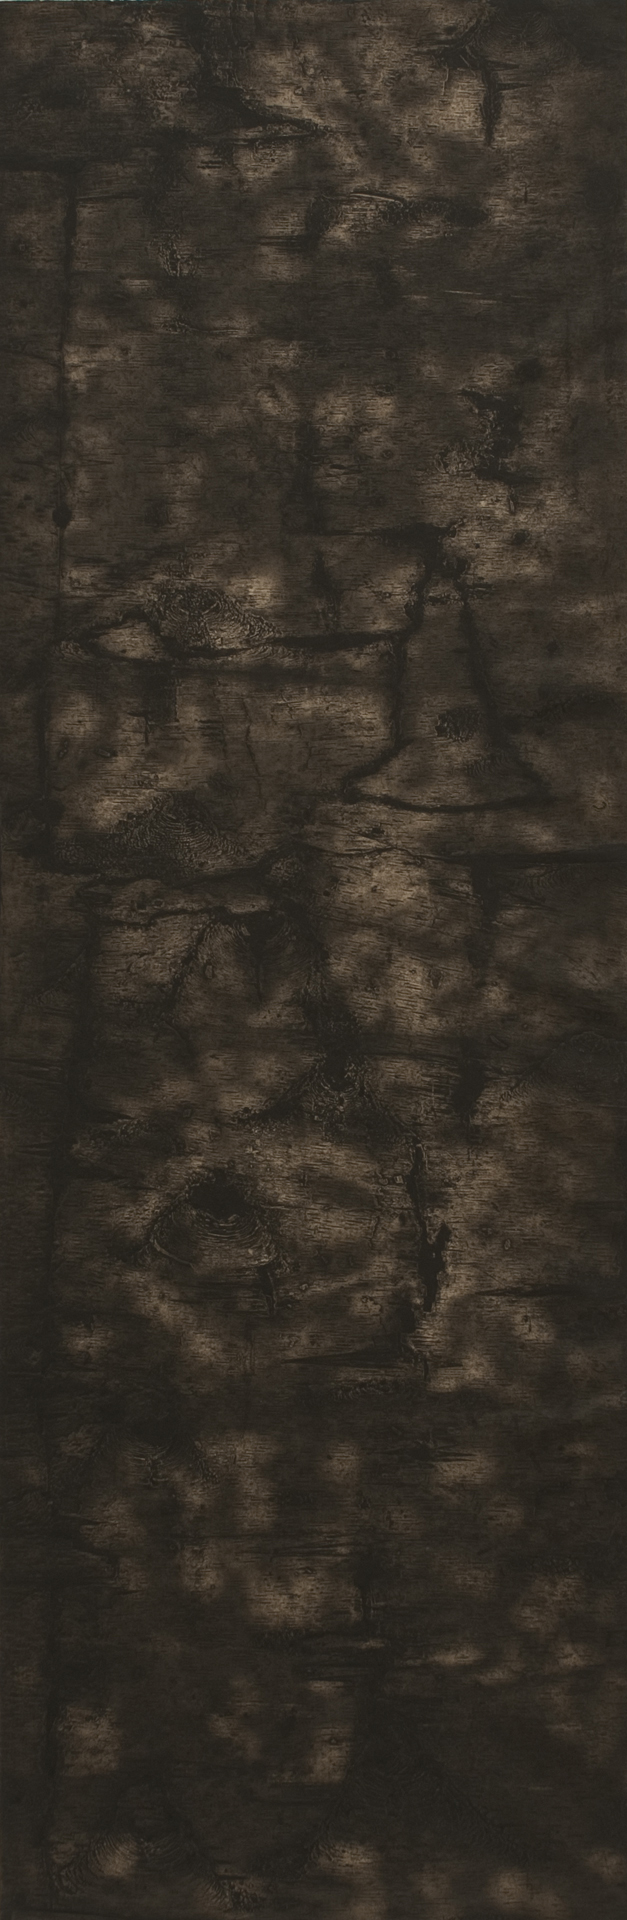 "Birch III – 70"" x 23"" Bark Intaglio and Rust Monoprints on Okawara"